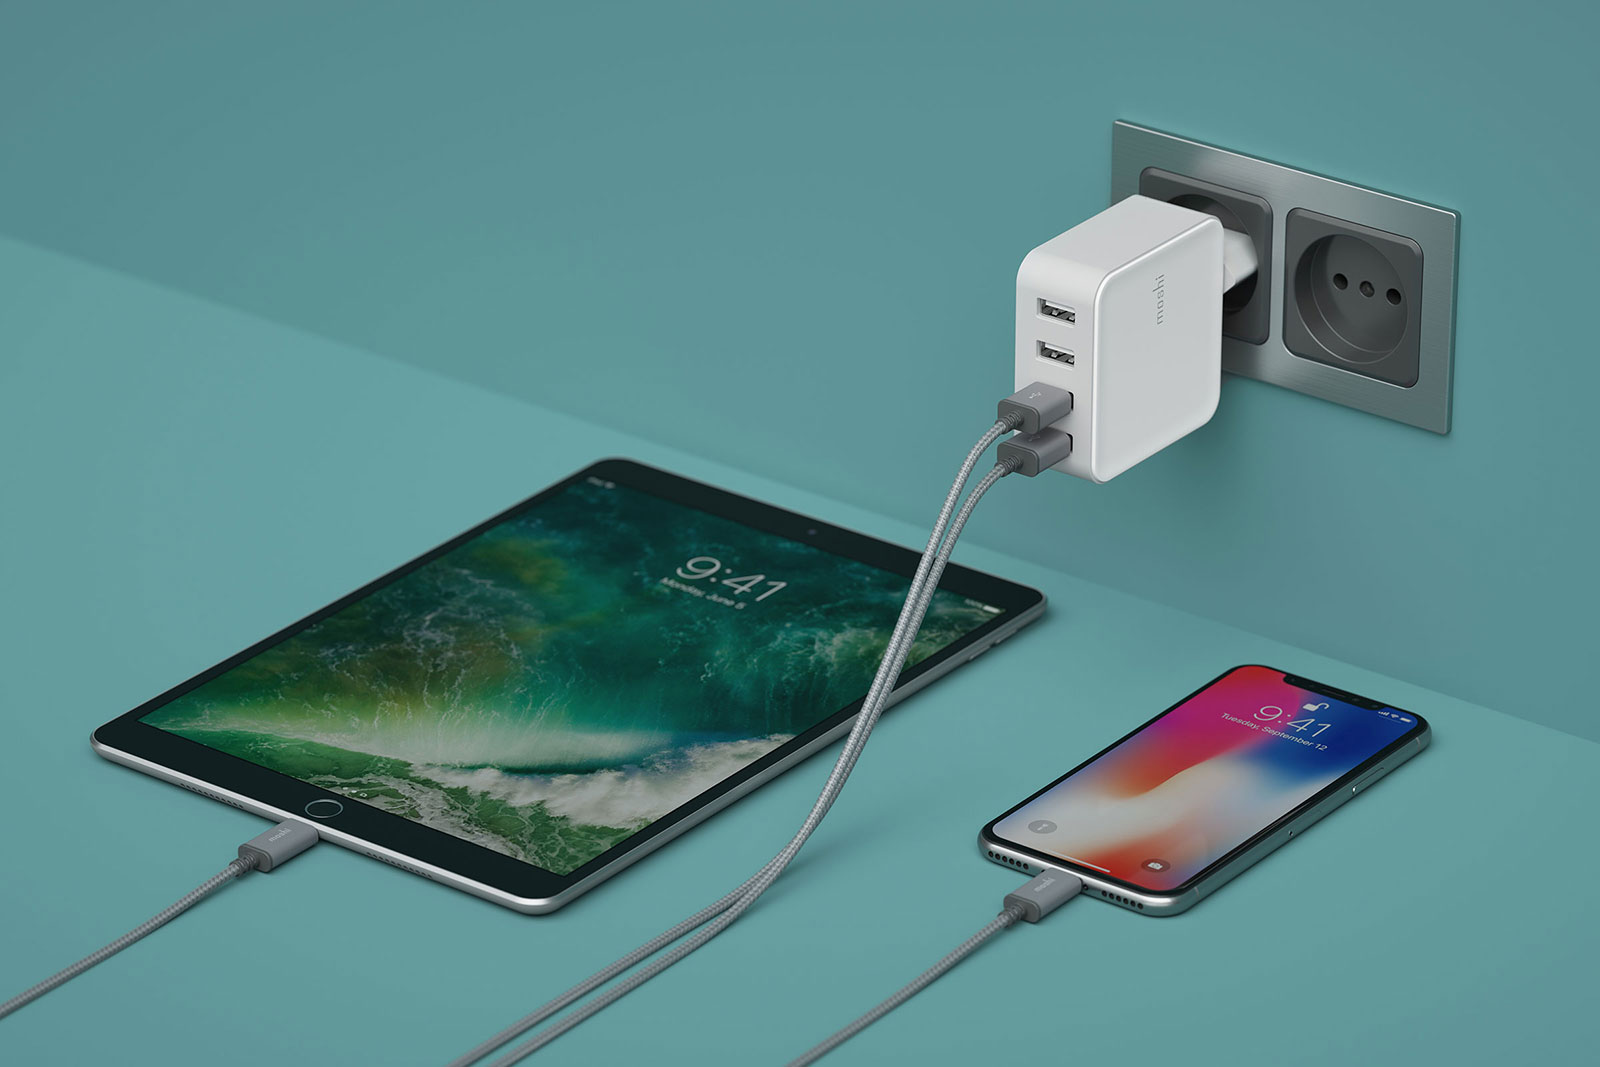 For all your charging needs